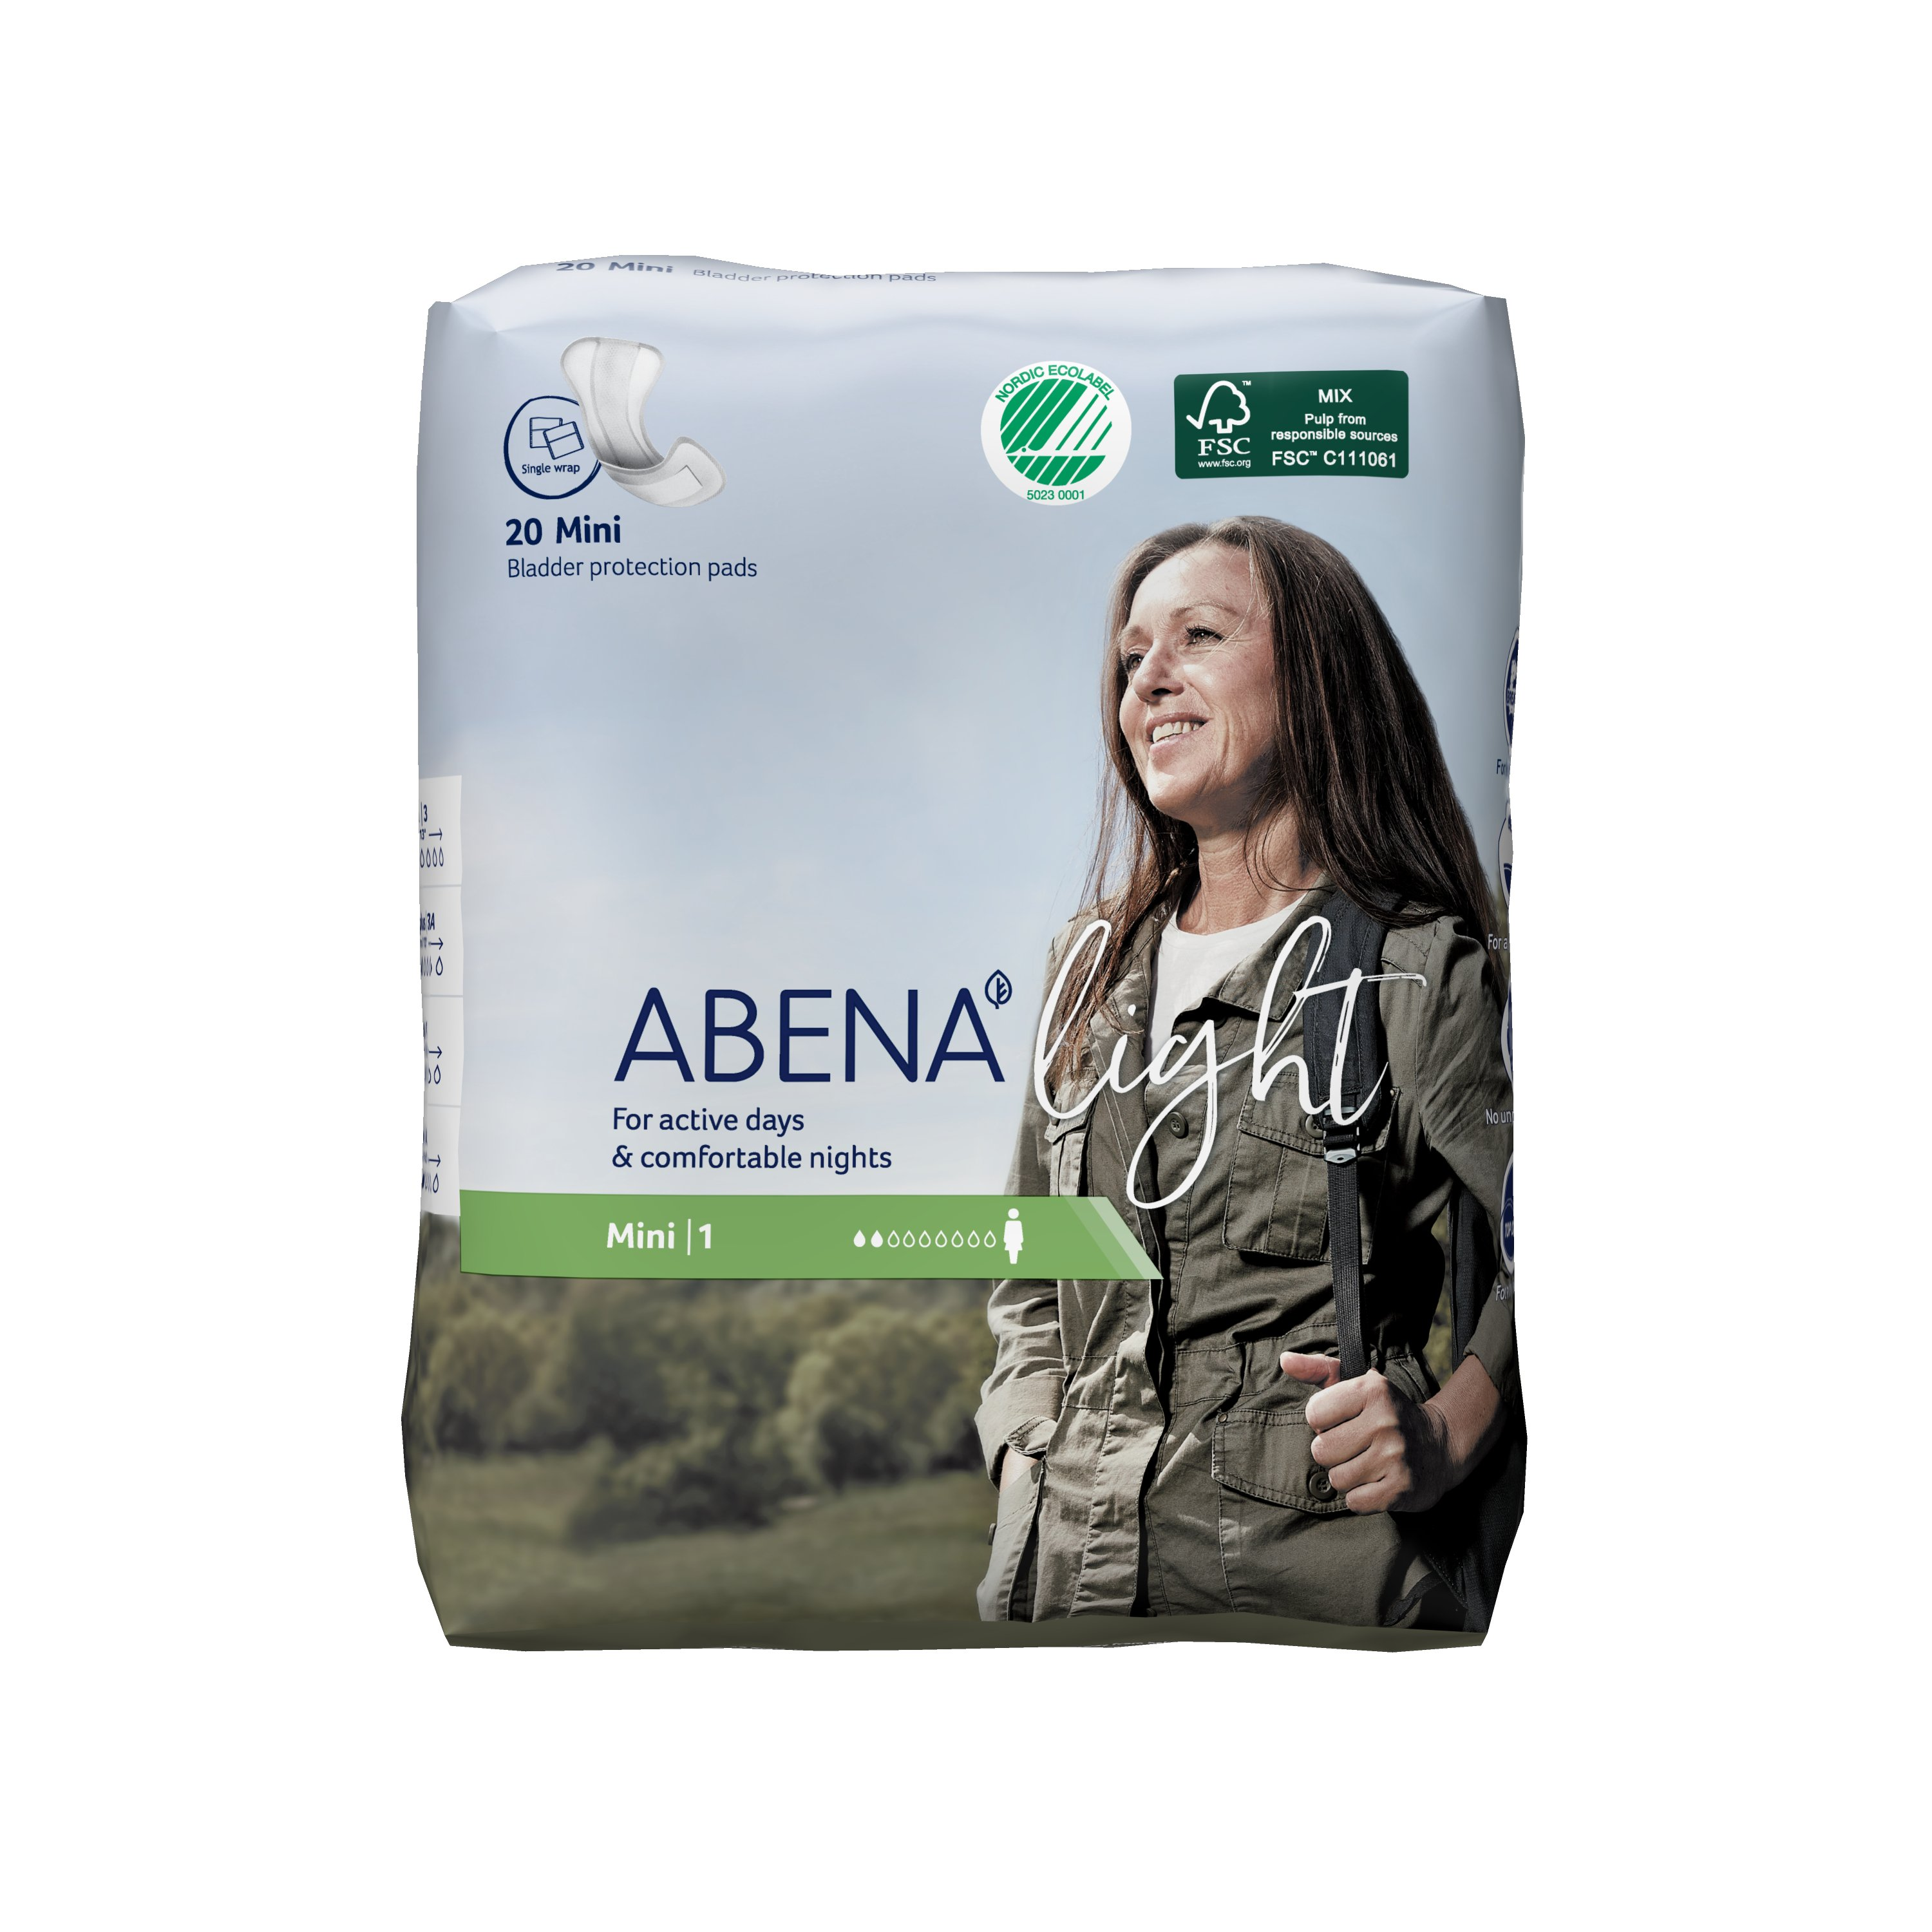 Abena Light Mini Disposable Unisex Adult Bladder Control Pad, Light Absorbency, 1000017155, One Size Fits Most -  Case of 320 Pads (16 Bags)